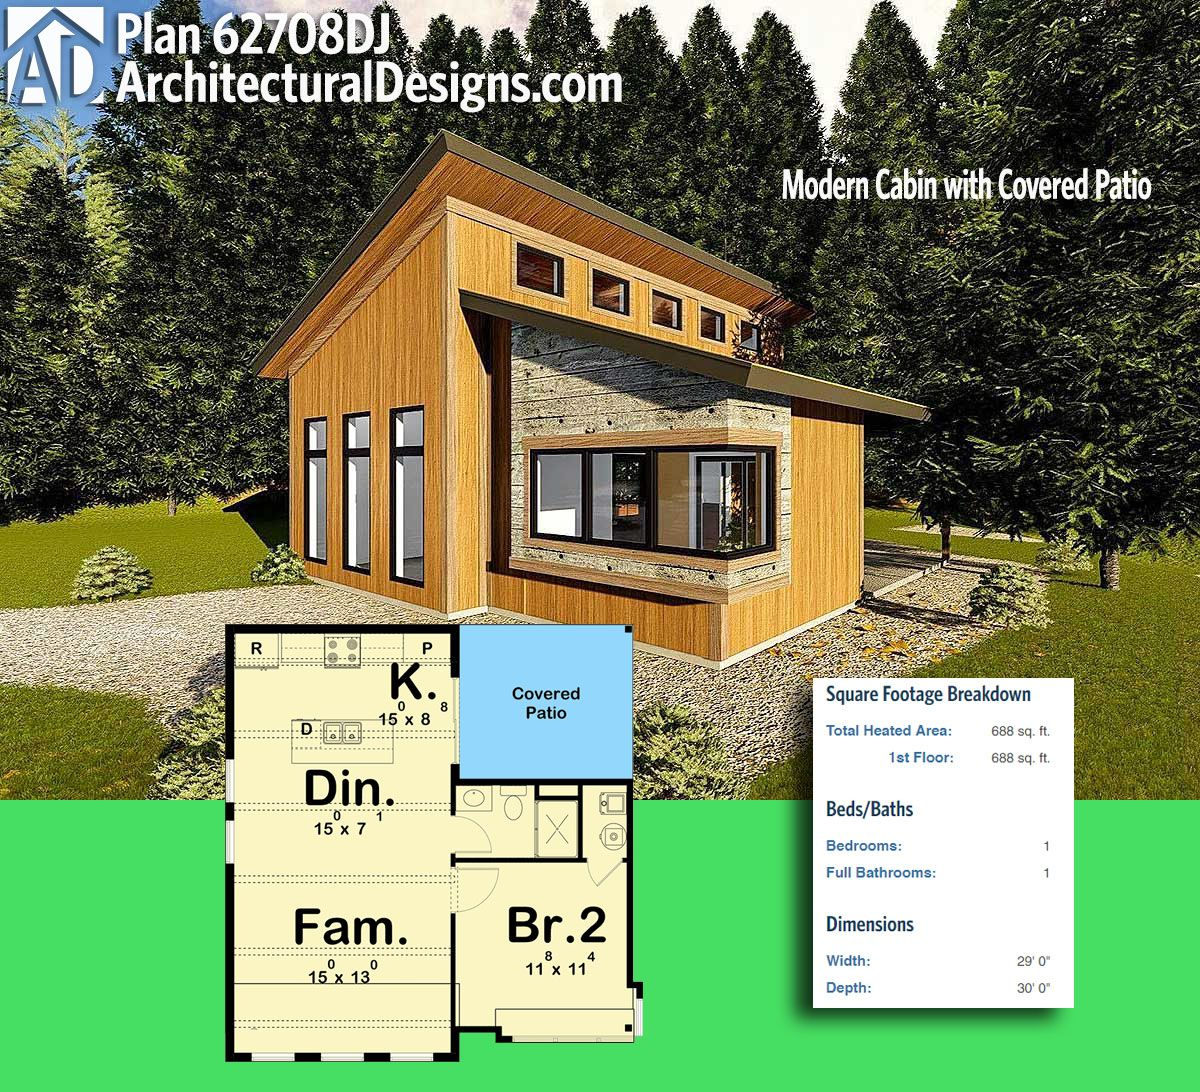 Plan 62708dj Modern Cabin With Covered Patio Tiny